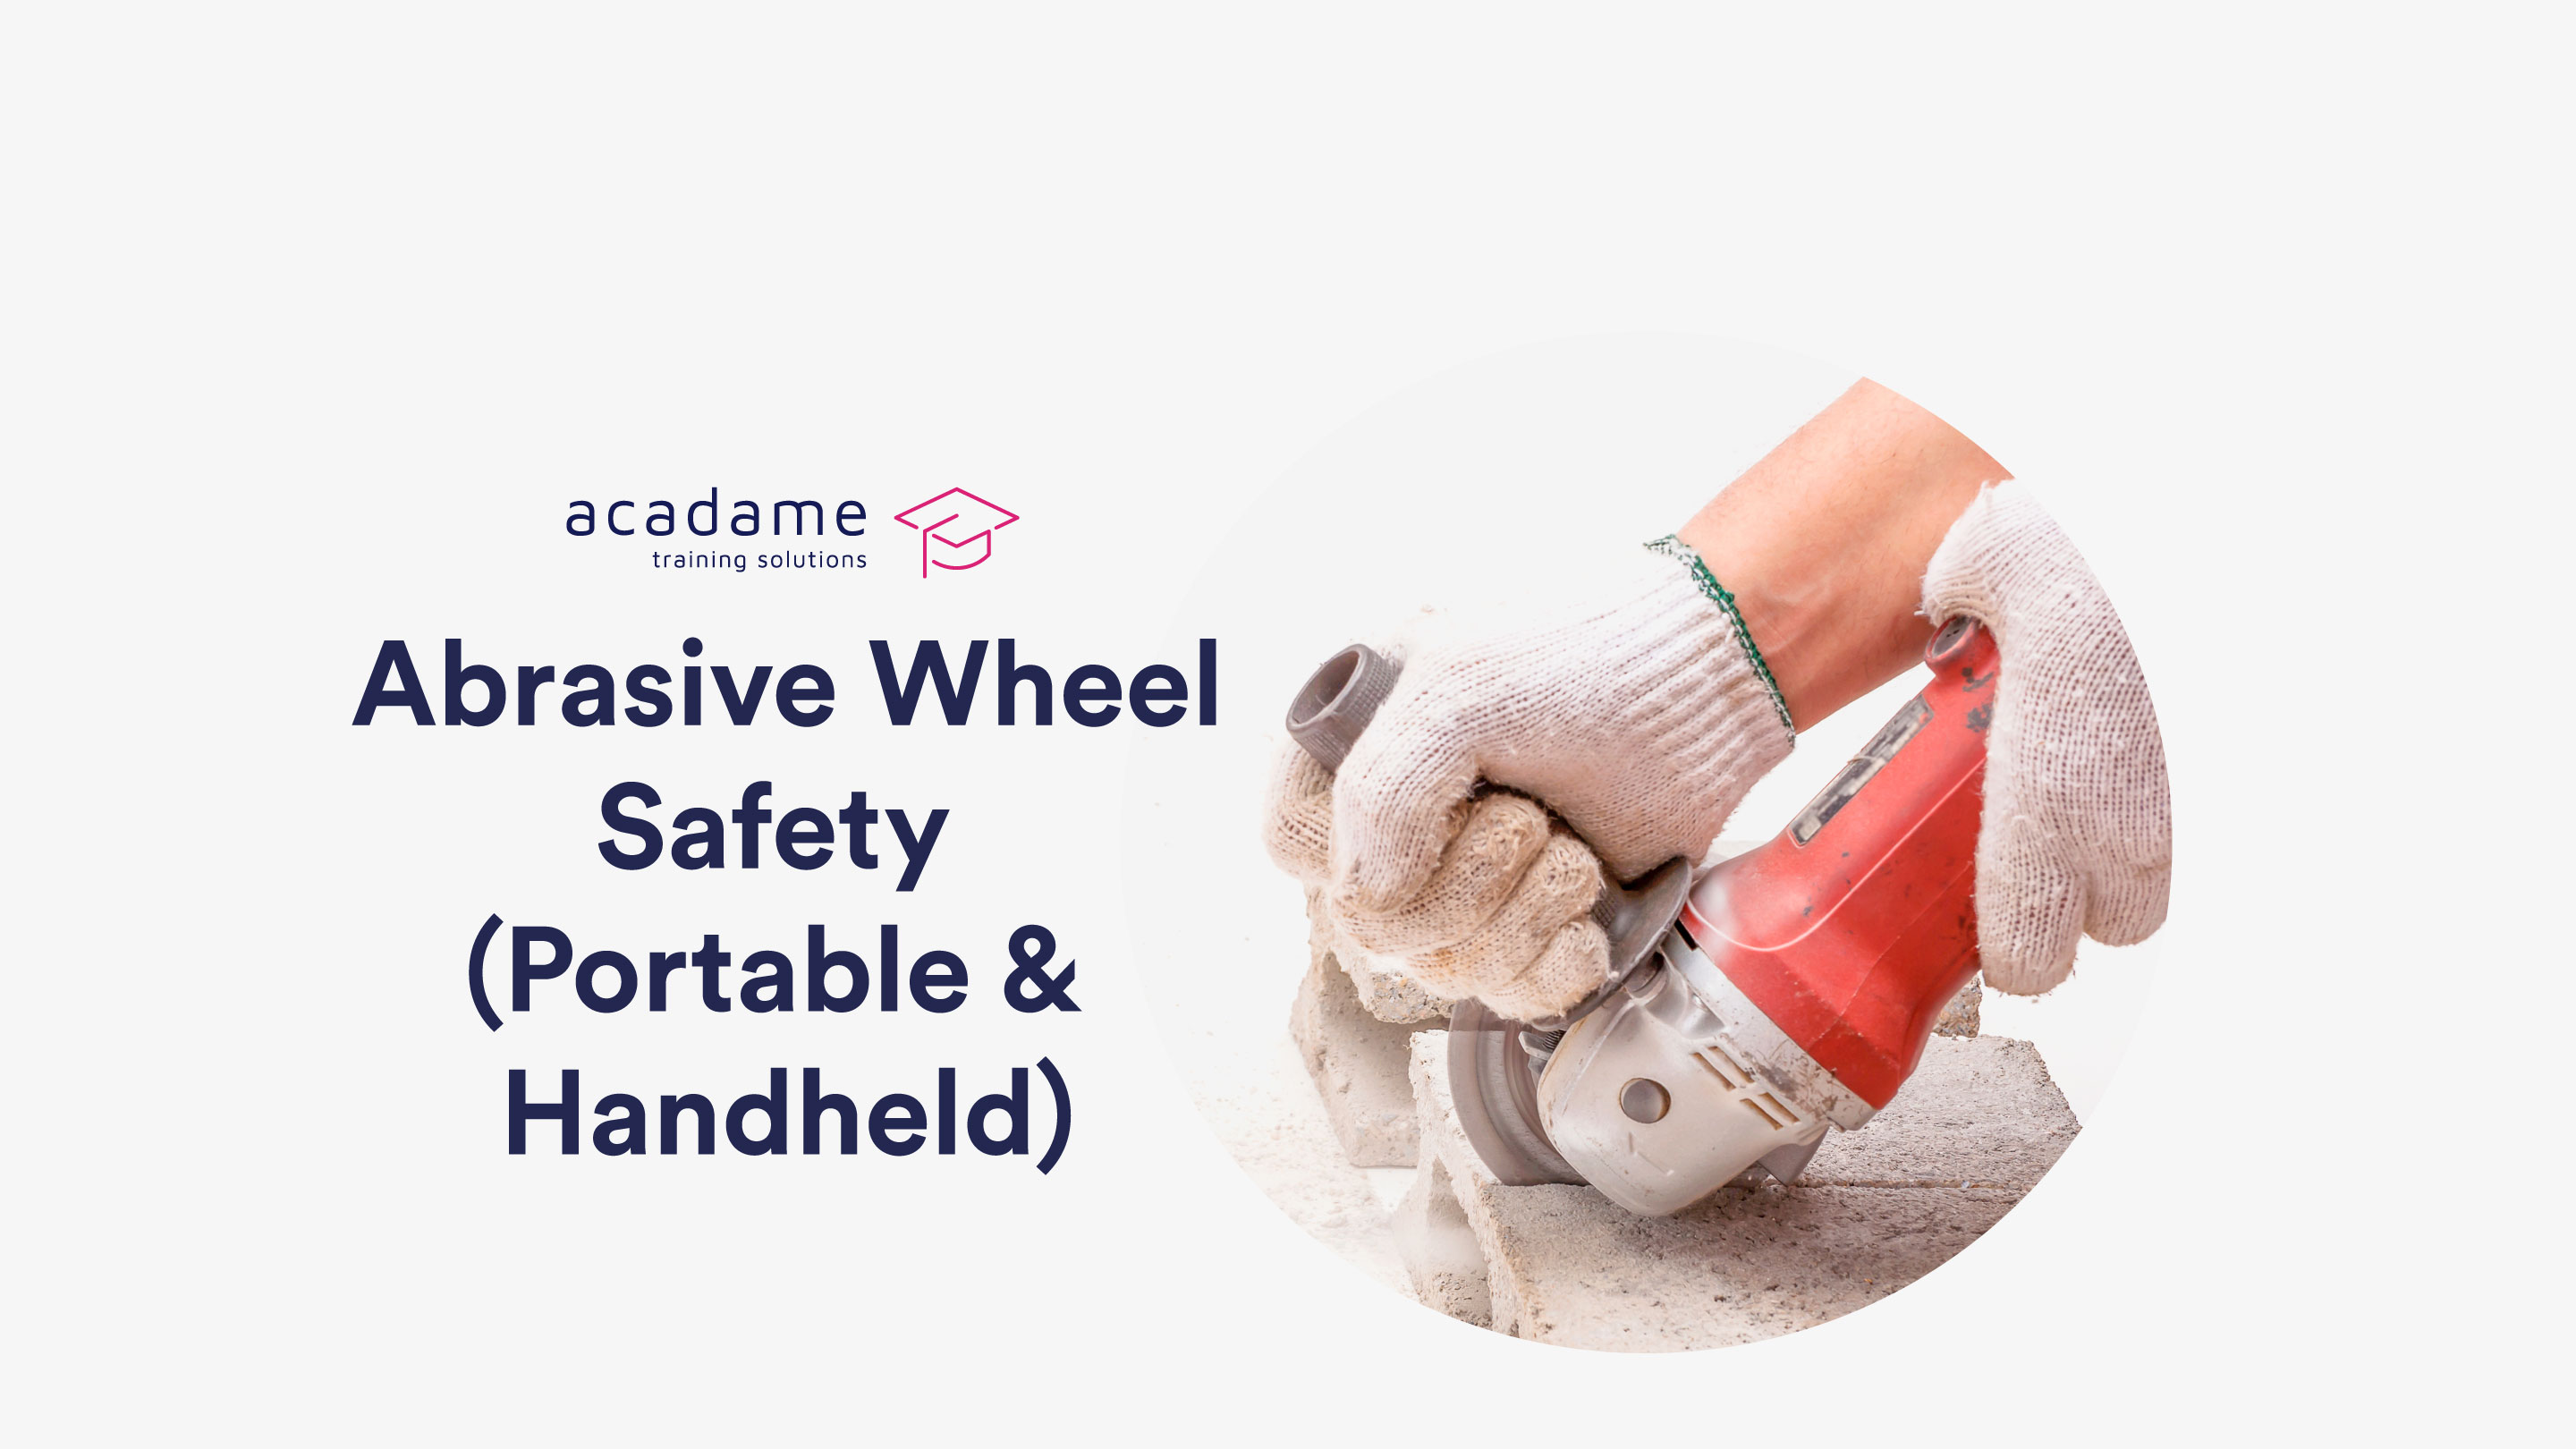 abrasive_wheel_safety_portable_and_handheld_training_course_in_stoke_on_trent.jpg